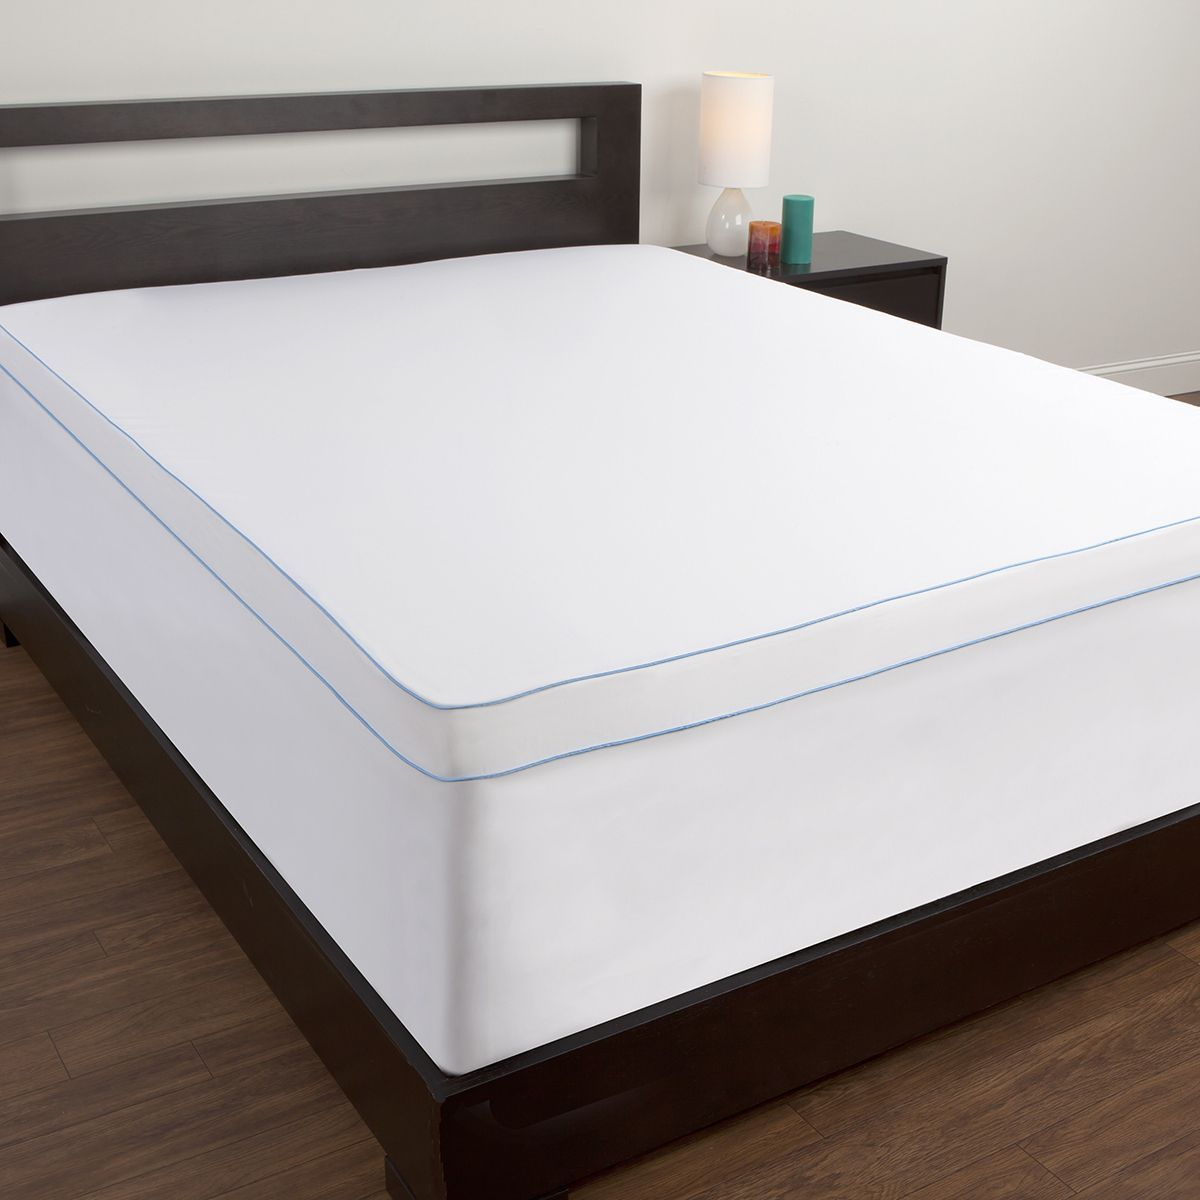 topper a cost mattress eco worth foam memory is the